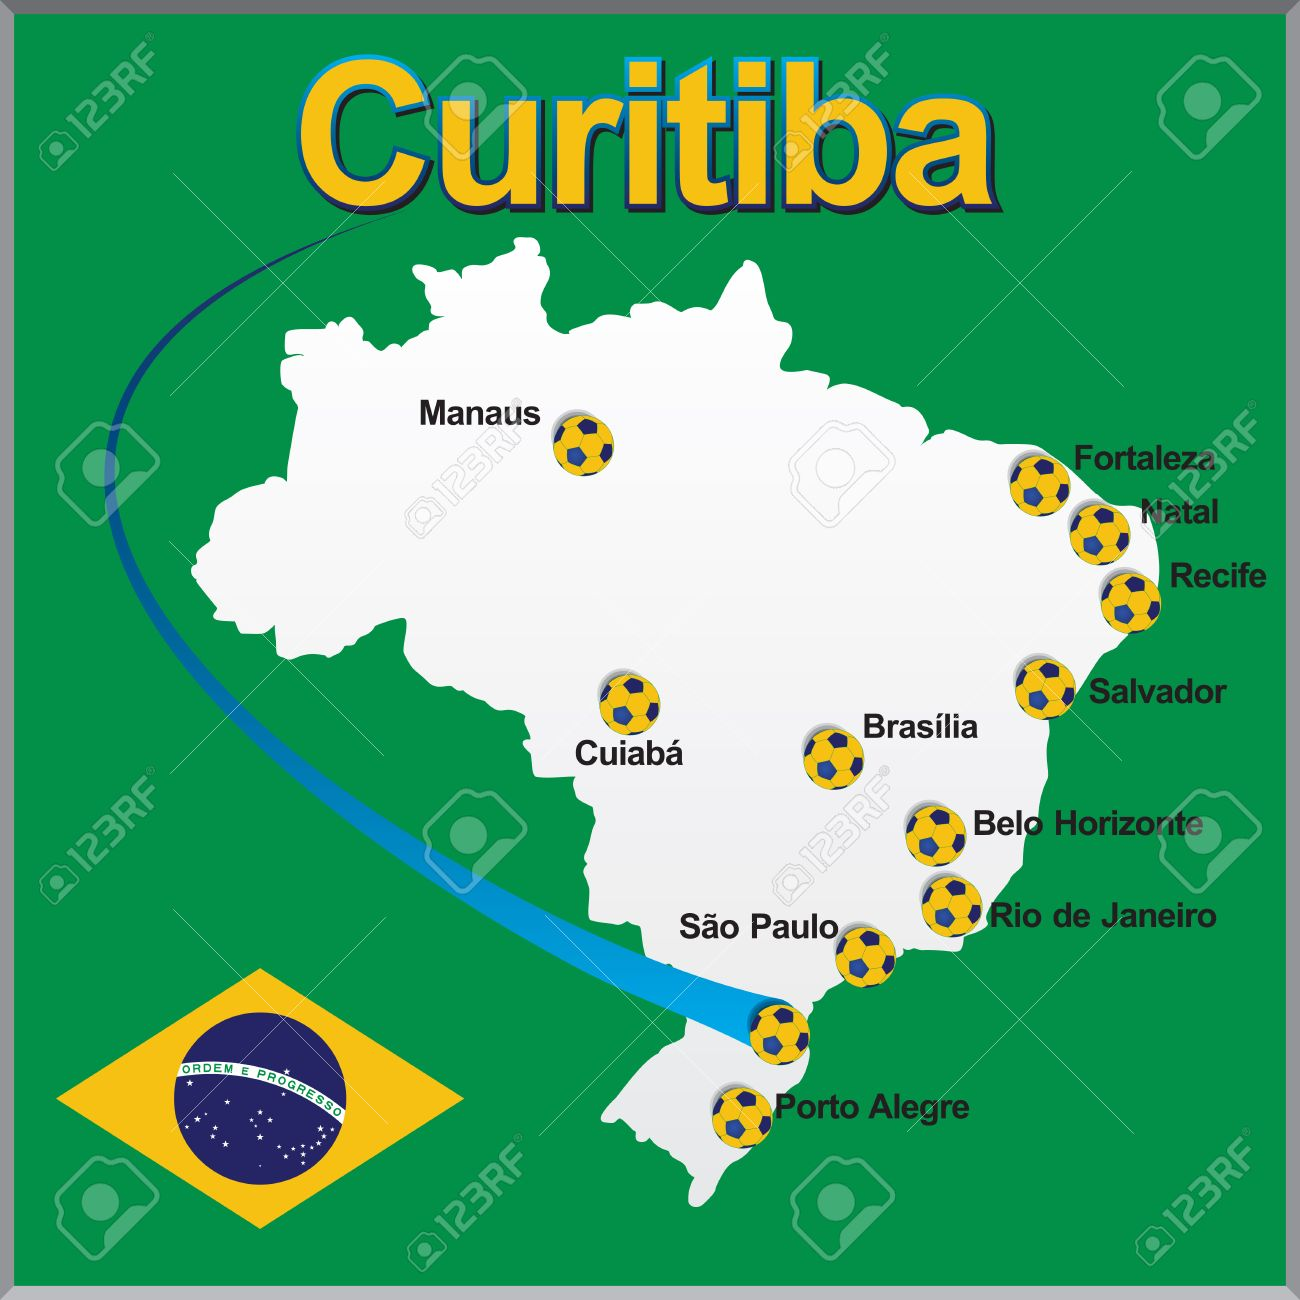 Curitiba brazil map soccer ball royalty free cliparts vectors curitiba brazil map soccer ball stock vector 25332287 gumiabroncs Image collections